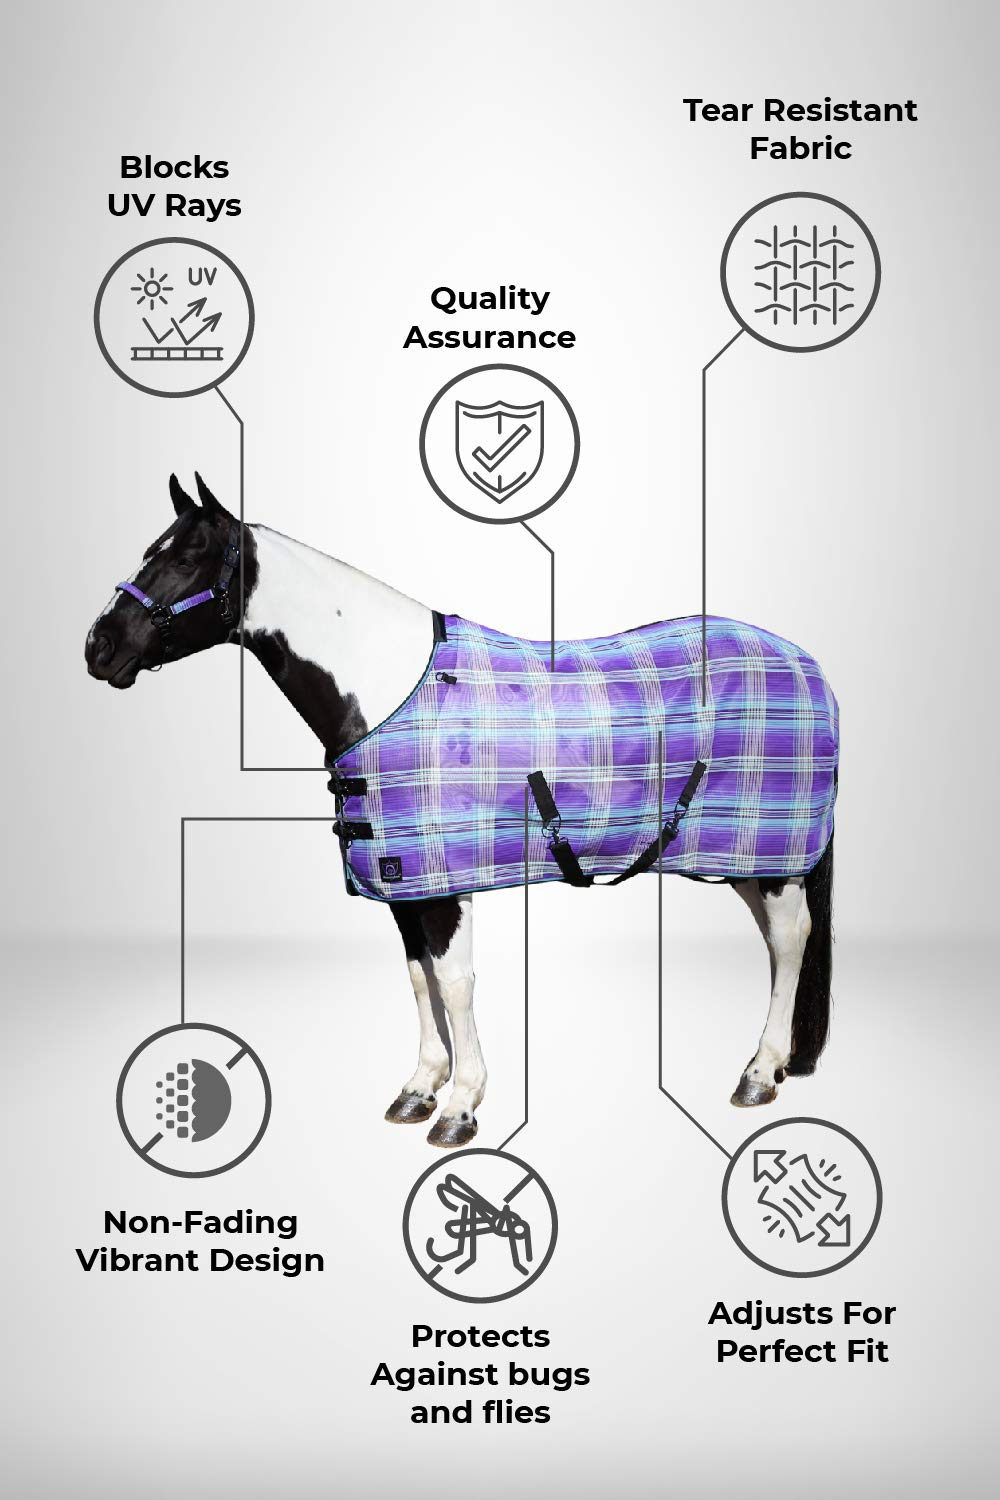 Kensington Platinum SureFit Protective Fly Sheet for Horses - SureFit Cut with Snap Front Chest Closure - Made of Grooming Mesh This Sheet Offers Maximum Protection Year Round - 75'' Lavender Mint by Kensington Protective Products (Image #2)